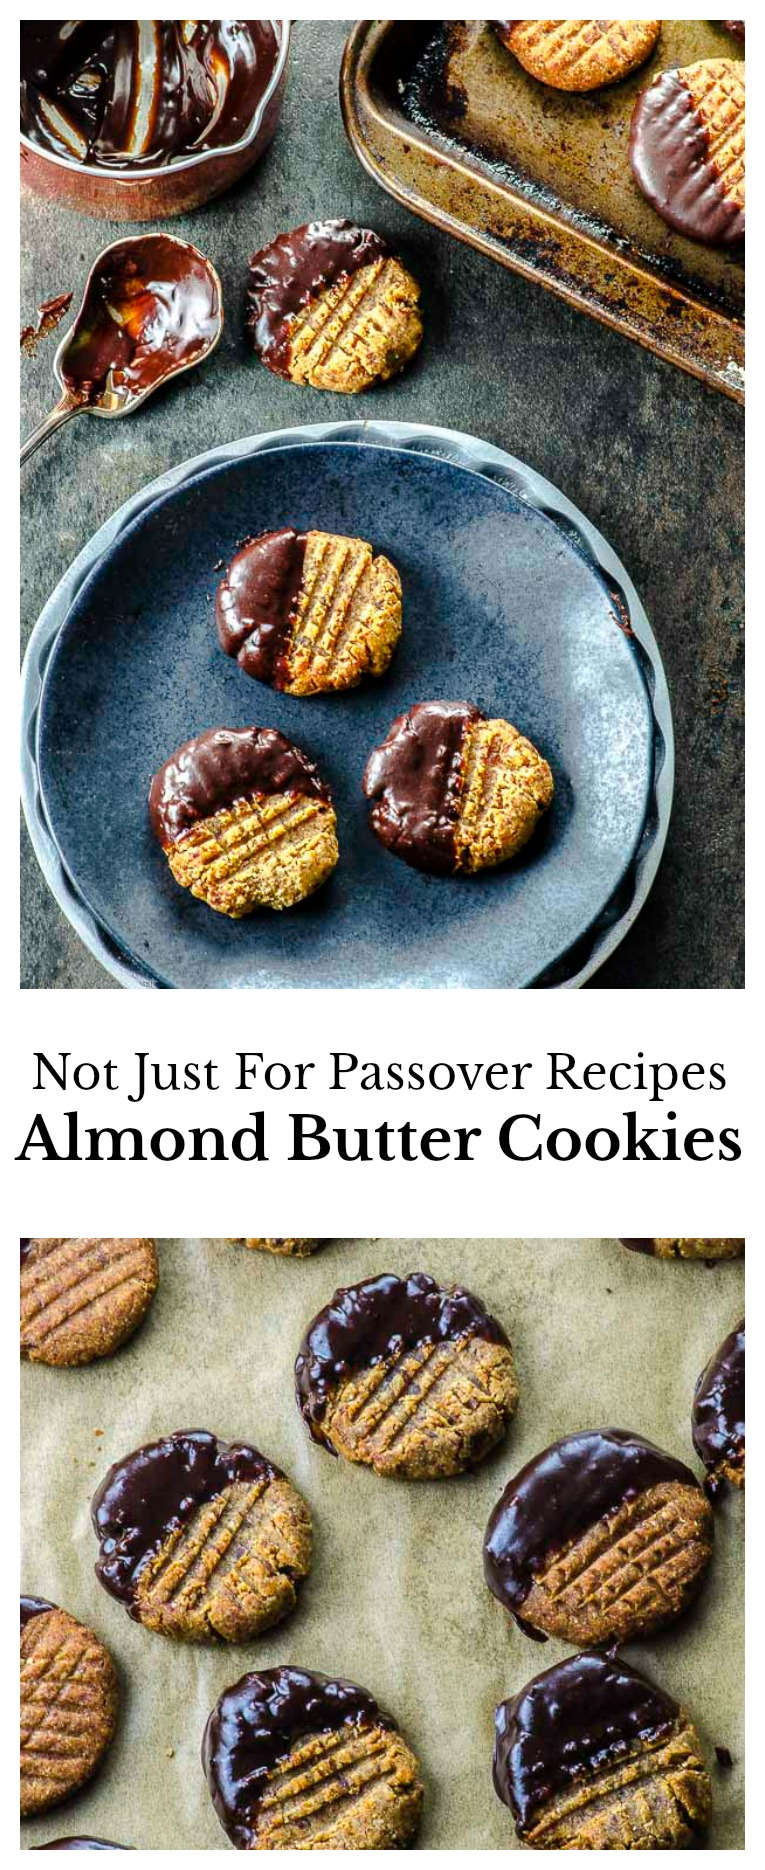 Chewy and delicious gluten-free almond butter cookies sweetened with dates and with only 5 ingredients!